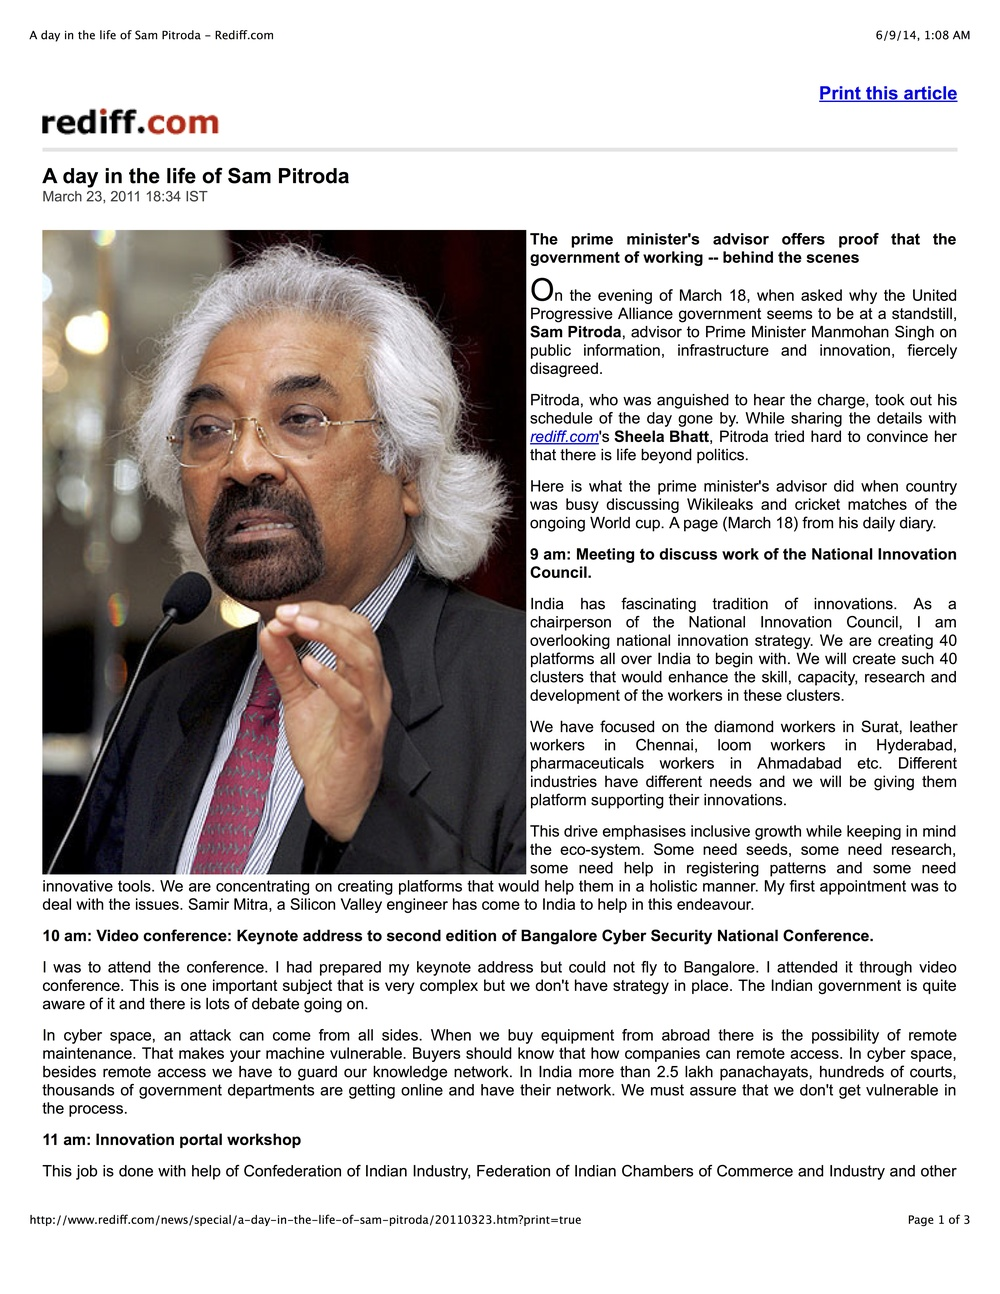 """A Day in the Life of Sam Pitroda,"" Rediff.com, 2011"